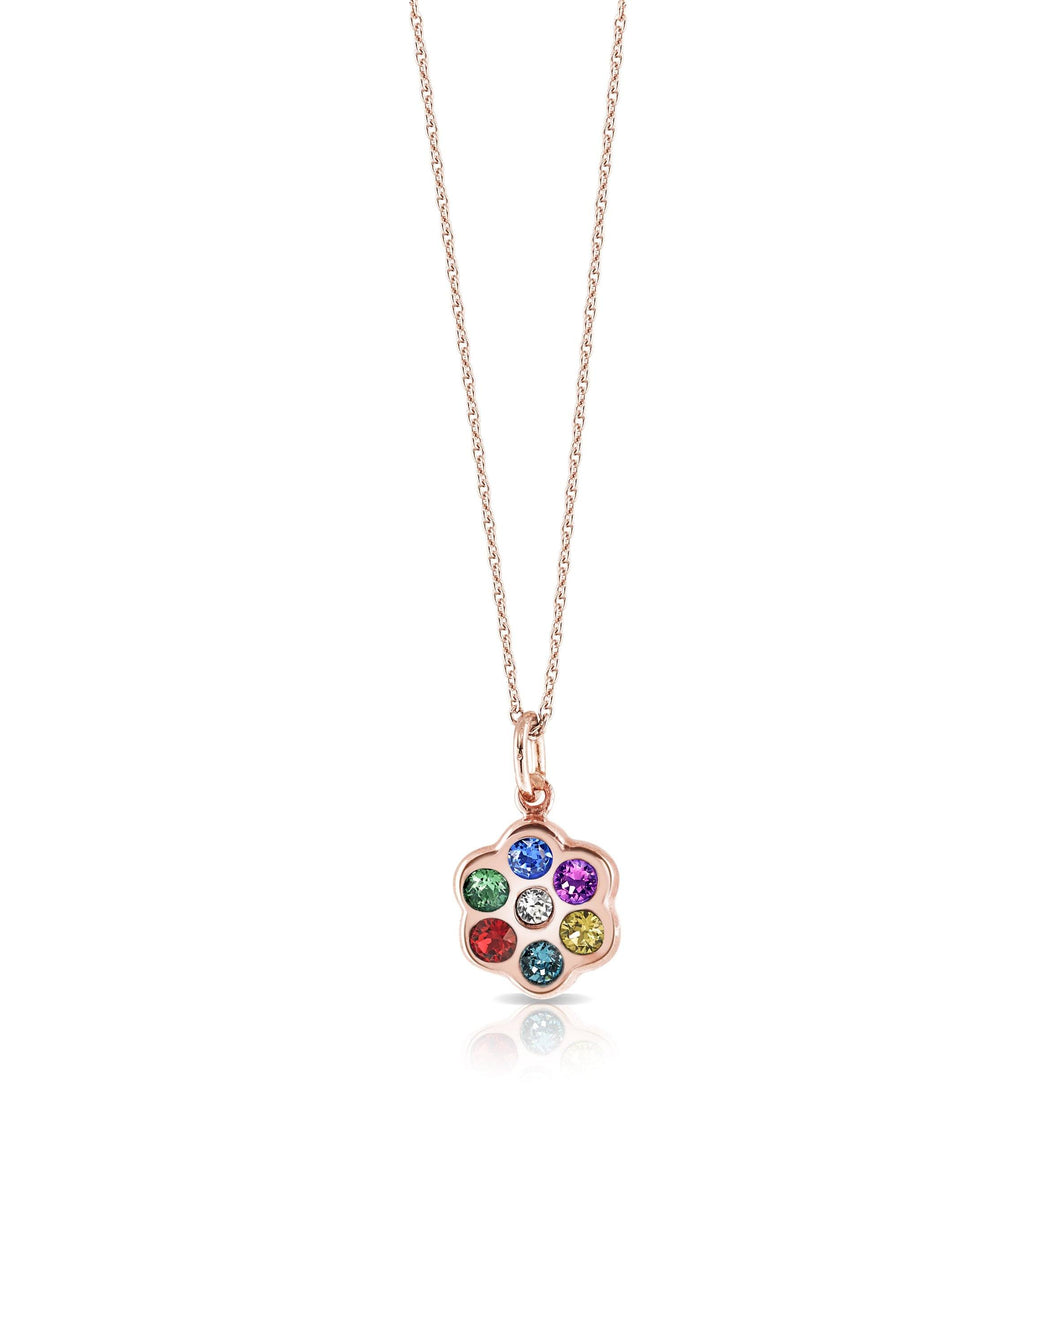 Capri Flower Necklace - Rose Gold pendant SBS Capri